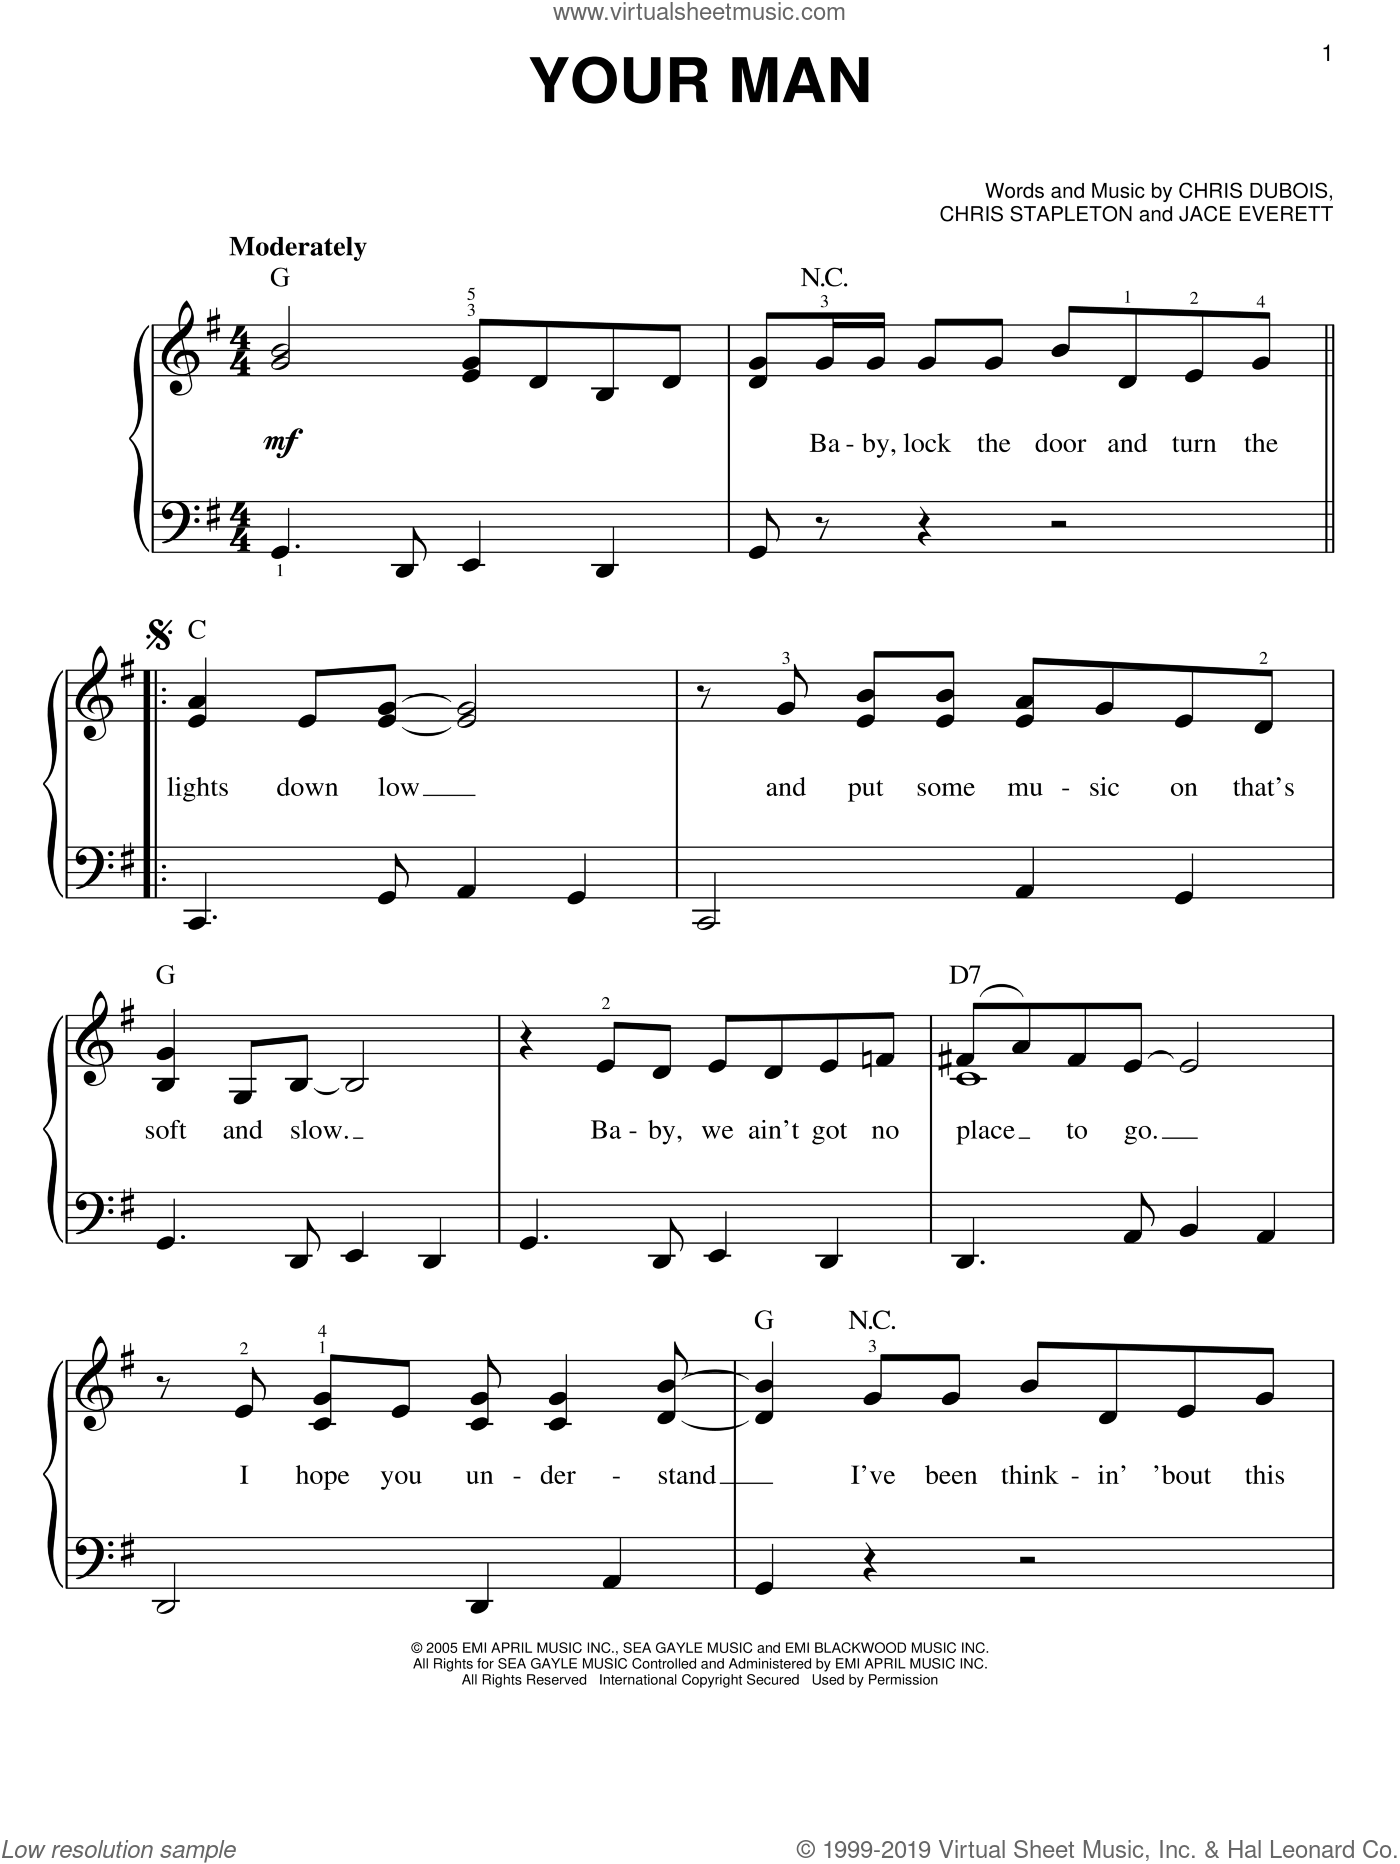 Your Man sheet music for piano solo by Josh Turner, Chris DuBois, Chris Stapleton and Jace Everett, easy skill level